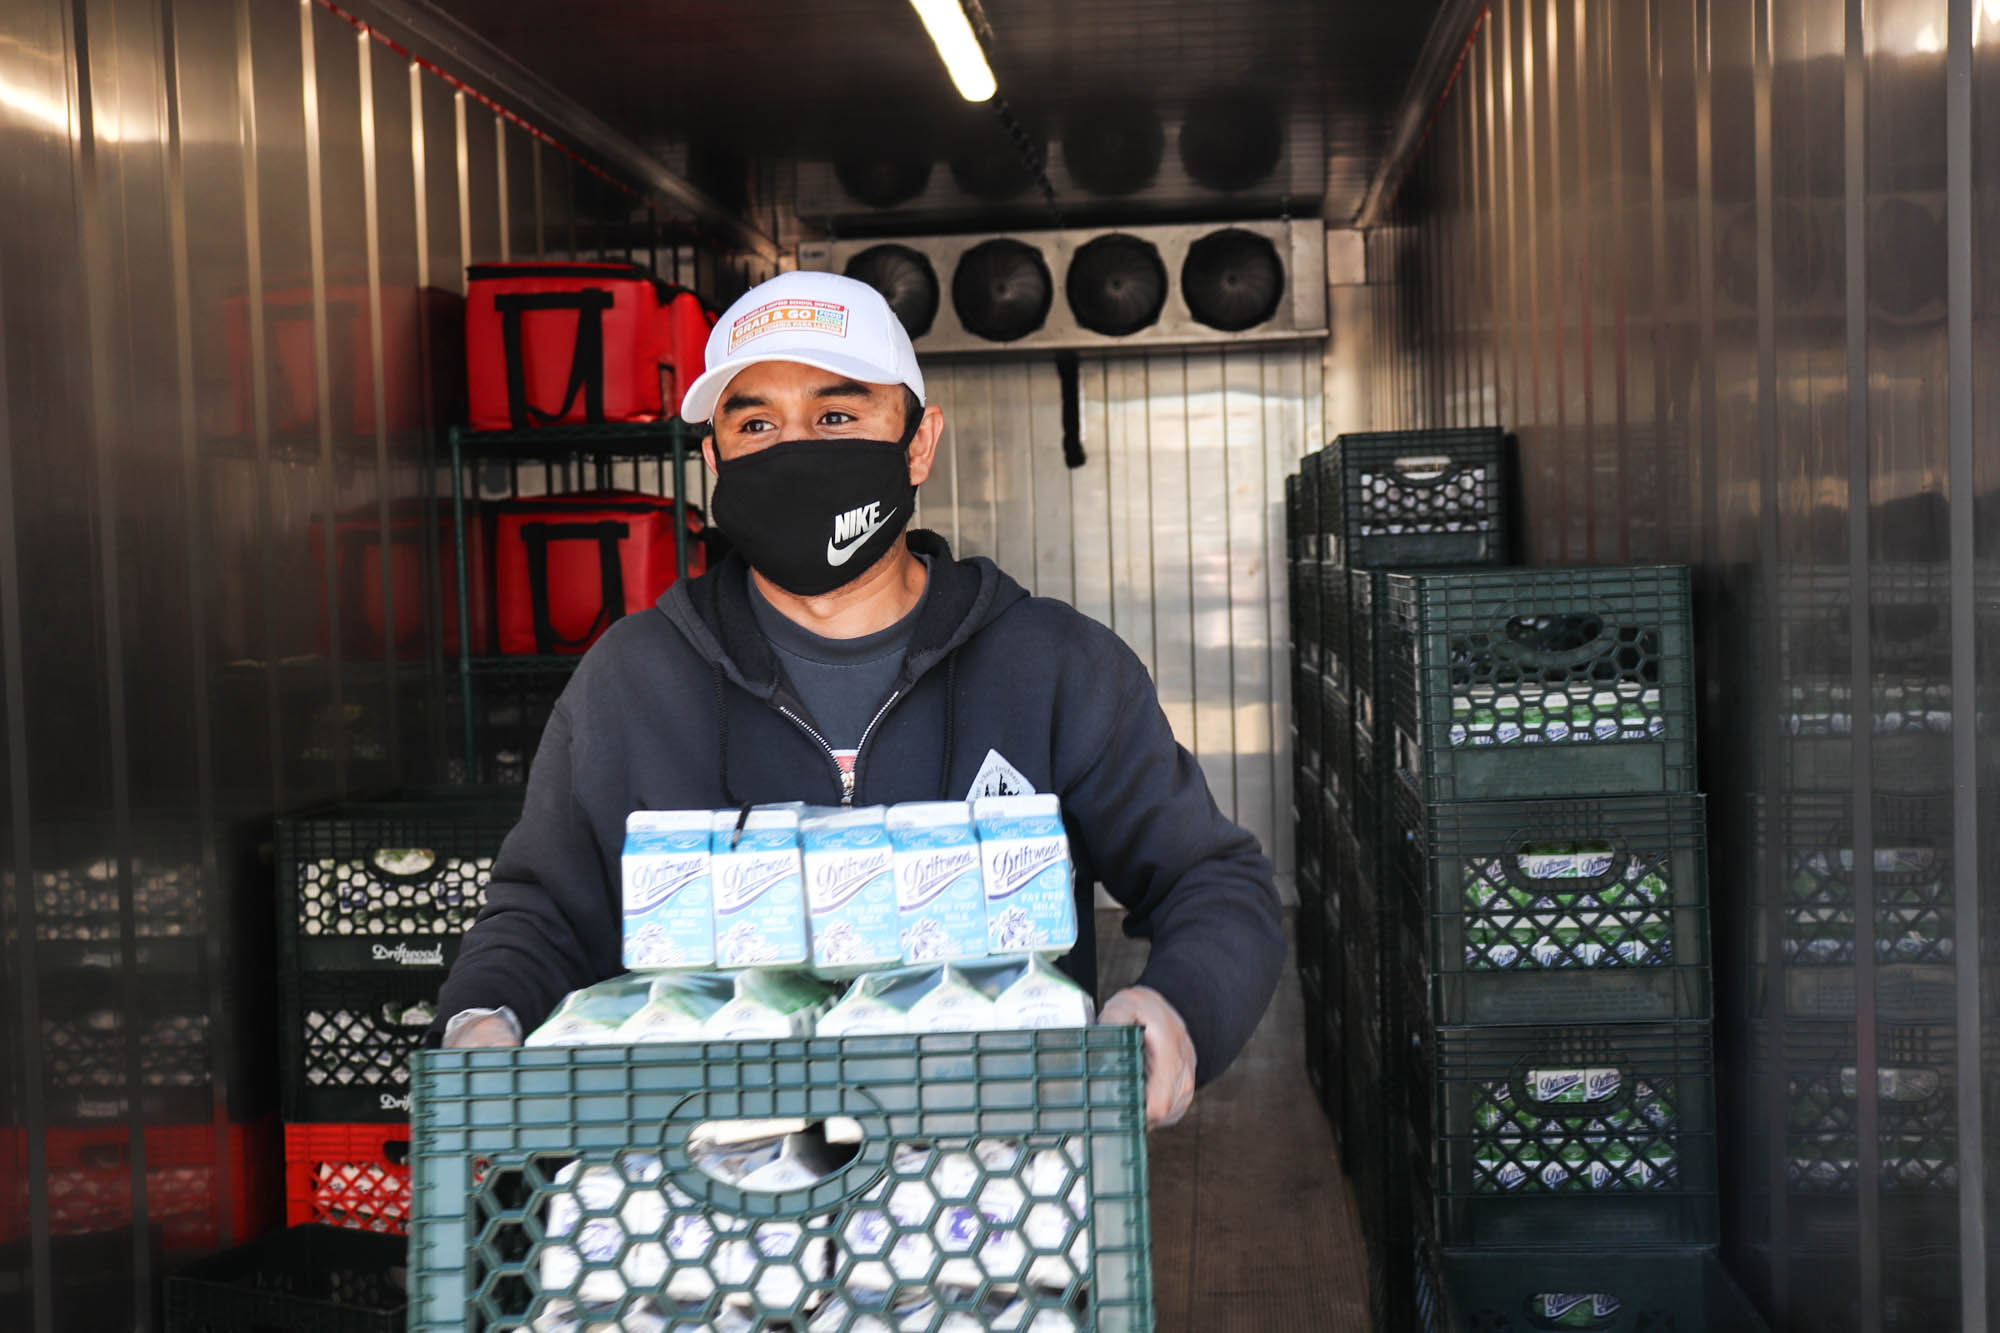 LAUSD expands food distribution